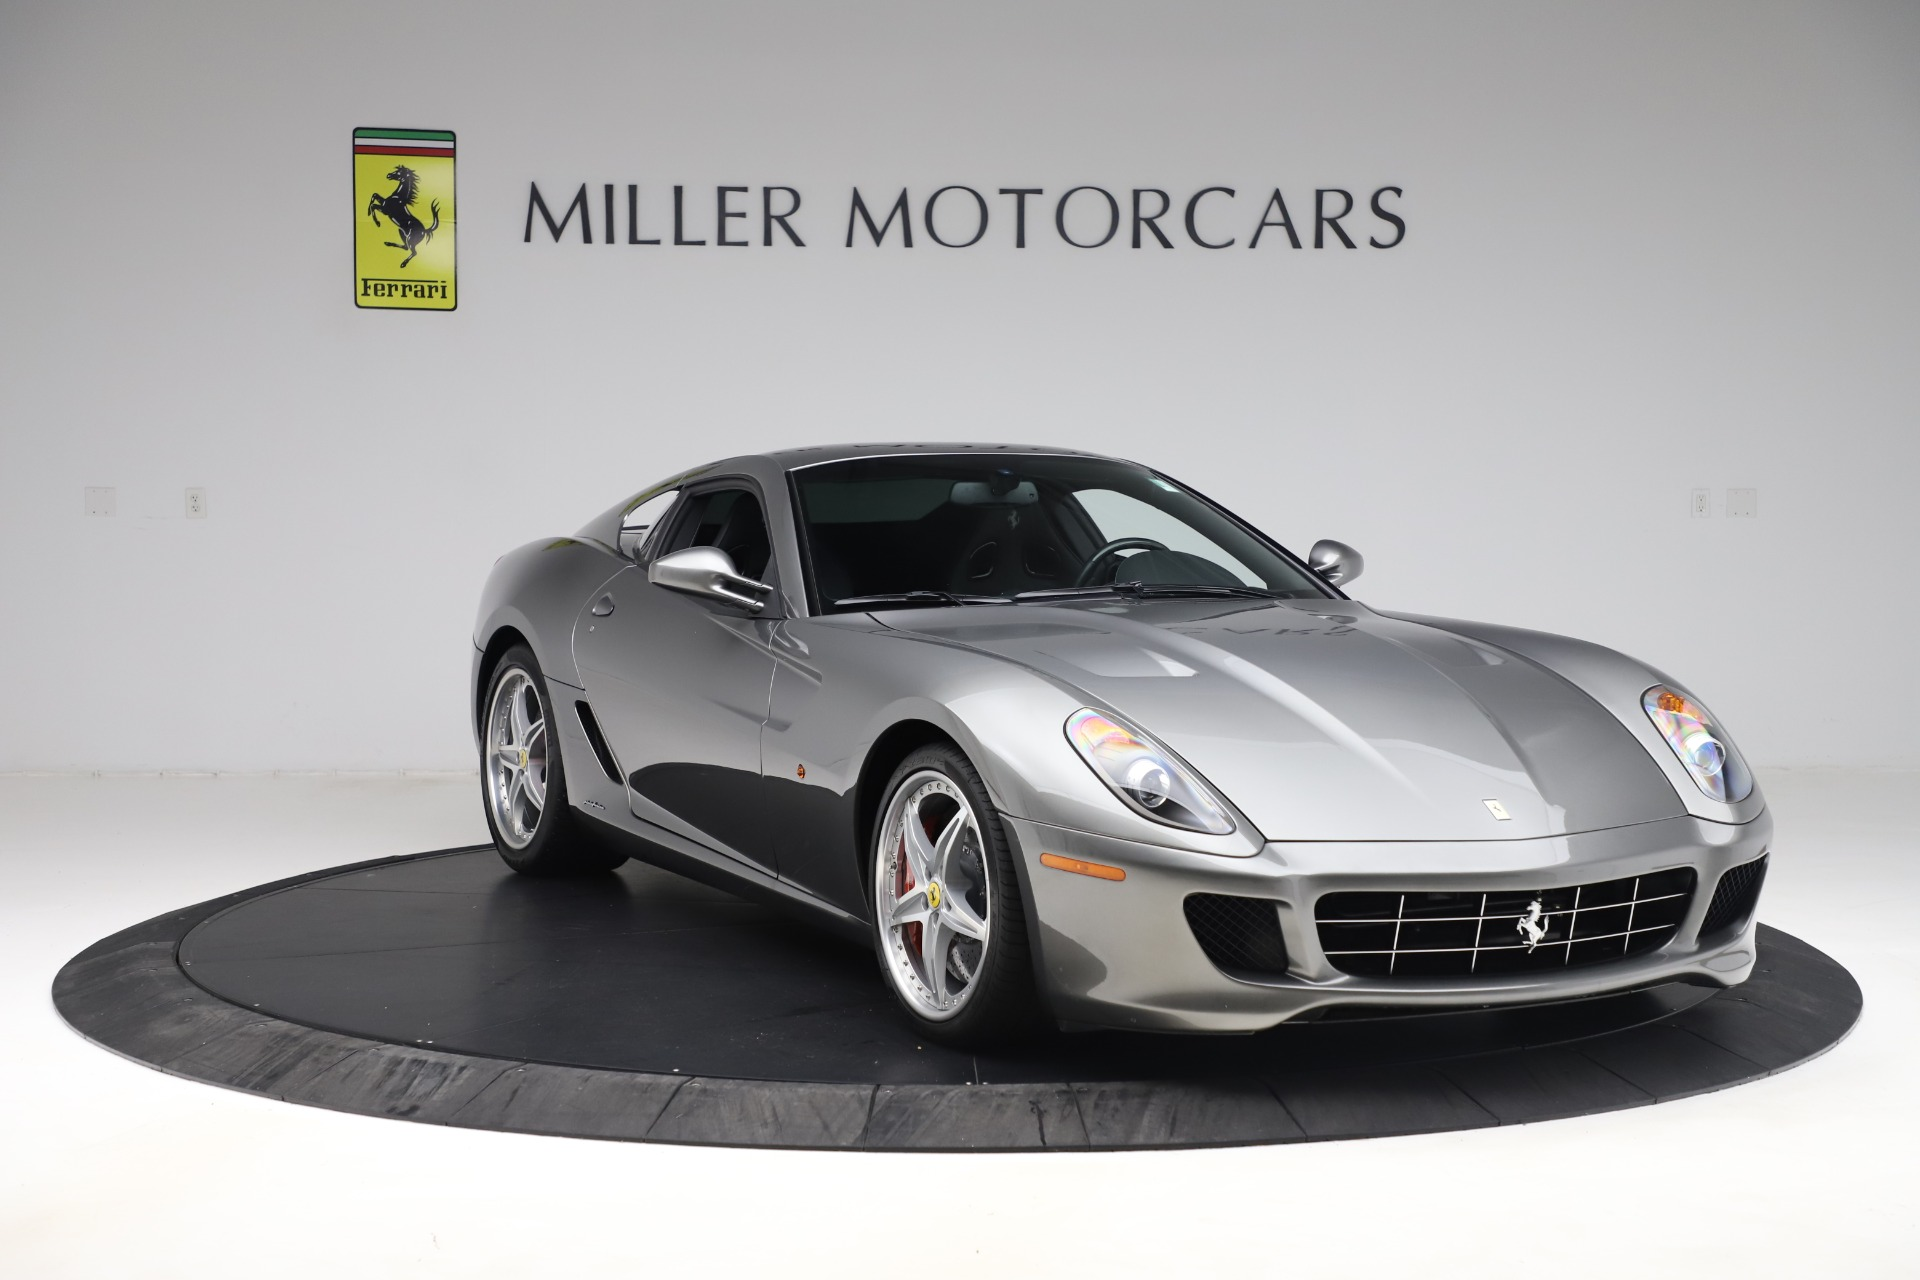 Used 2010 Ferrari 599 GTB Fiorano HGTE For Sale In Westport, CT 3544_p11